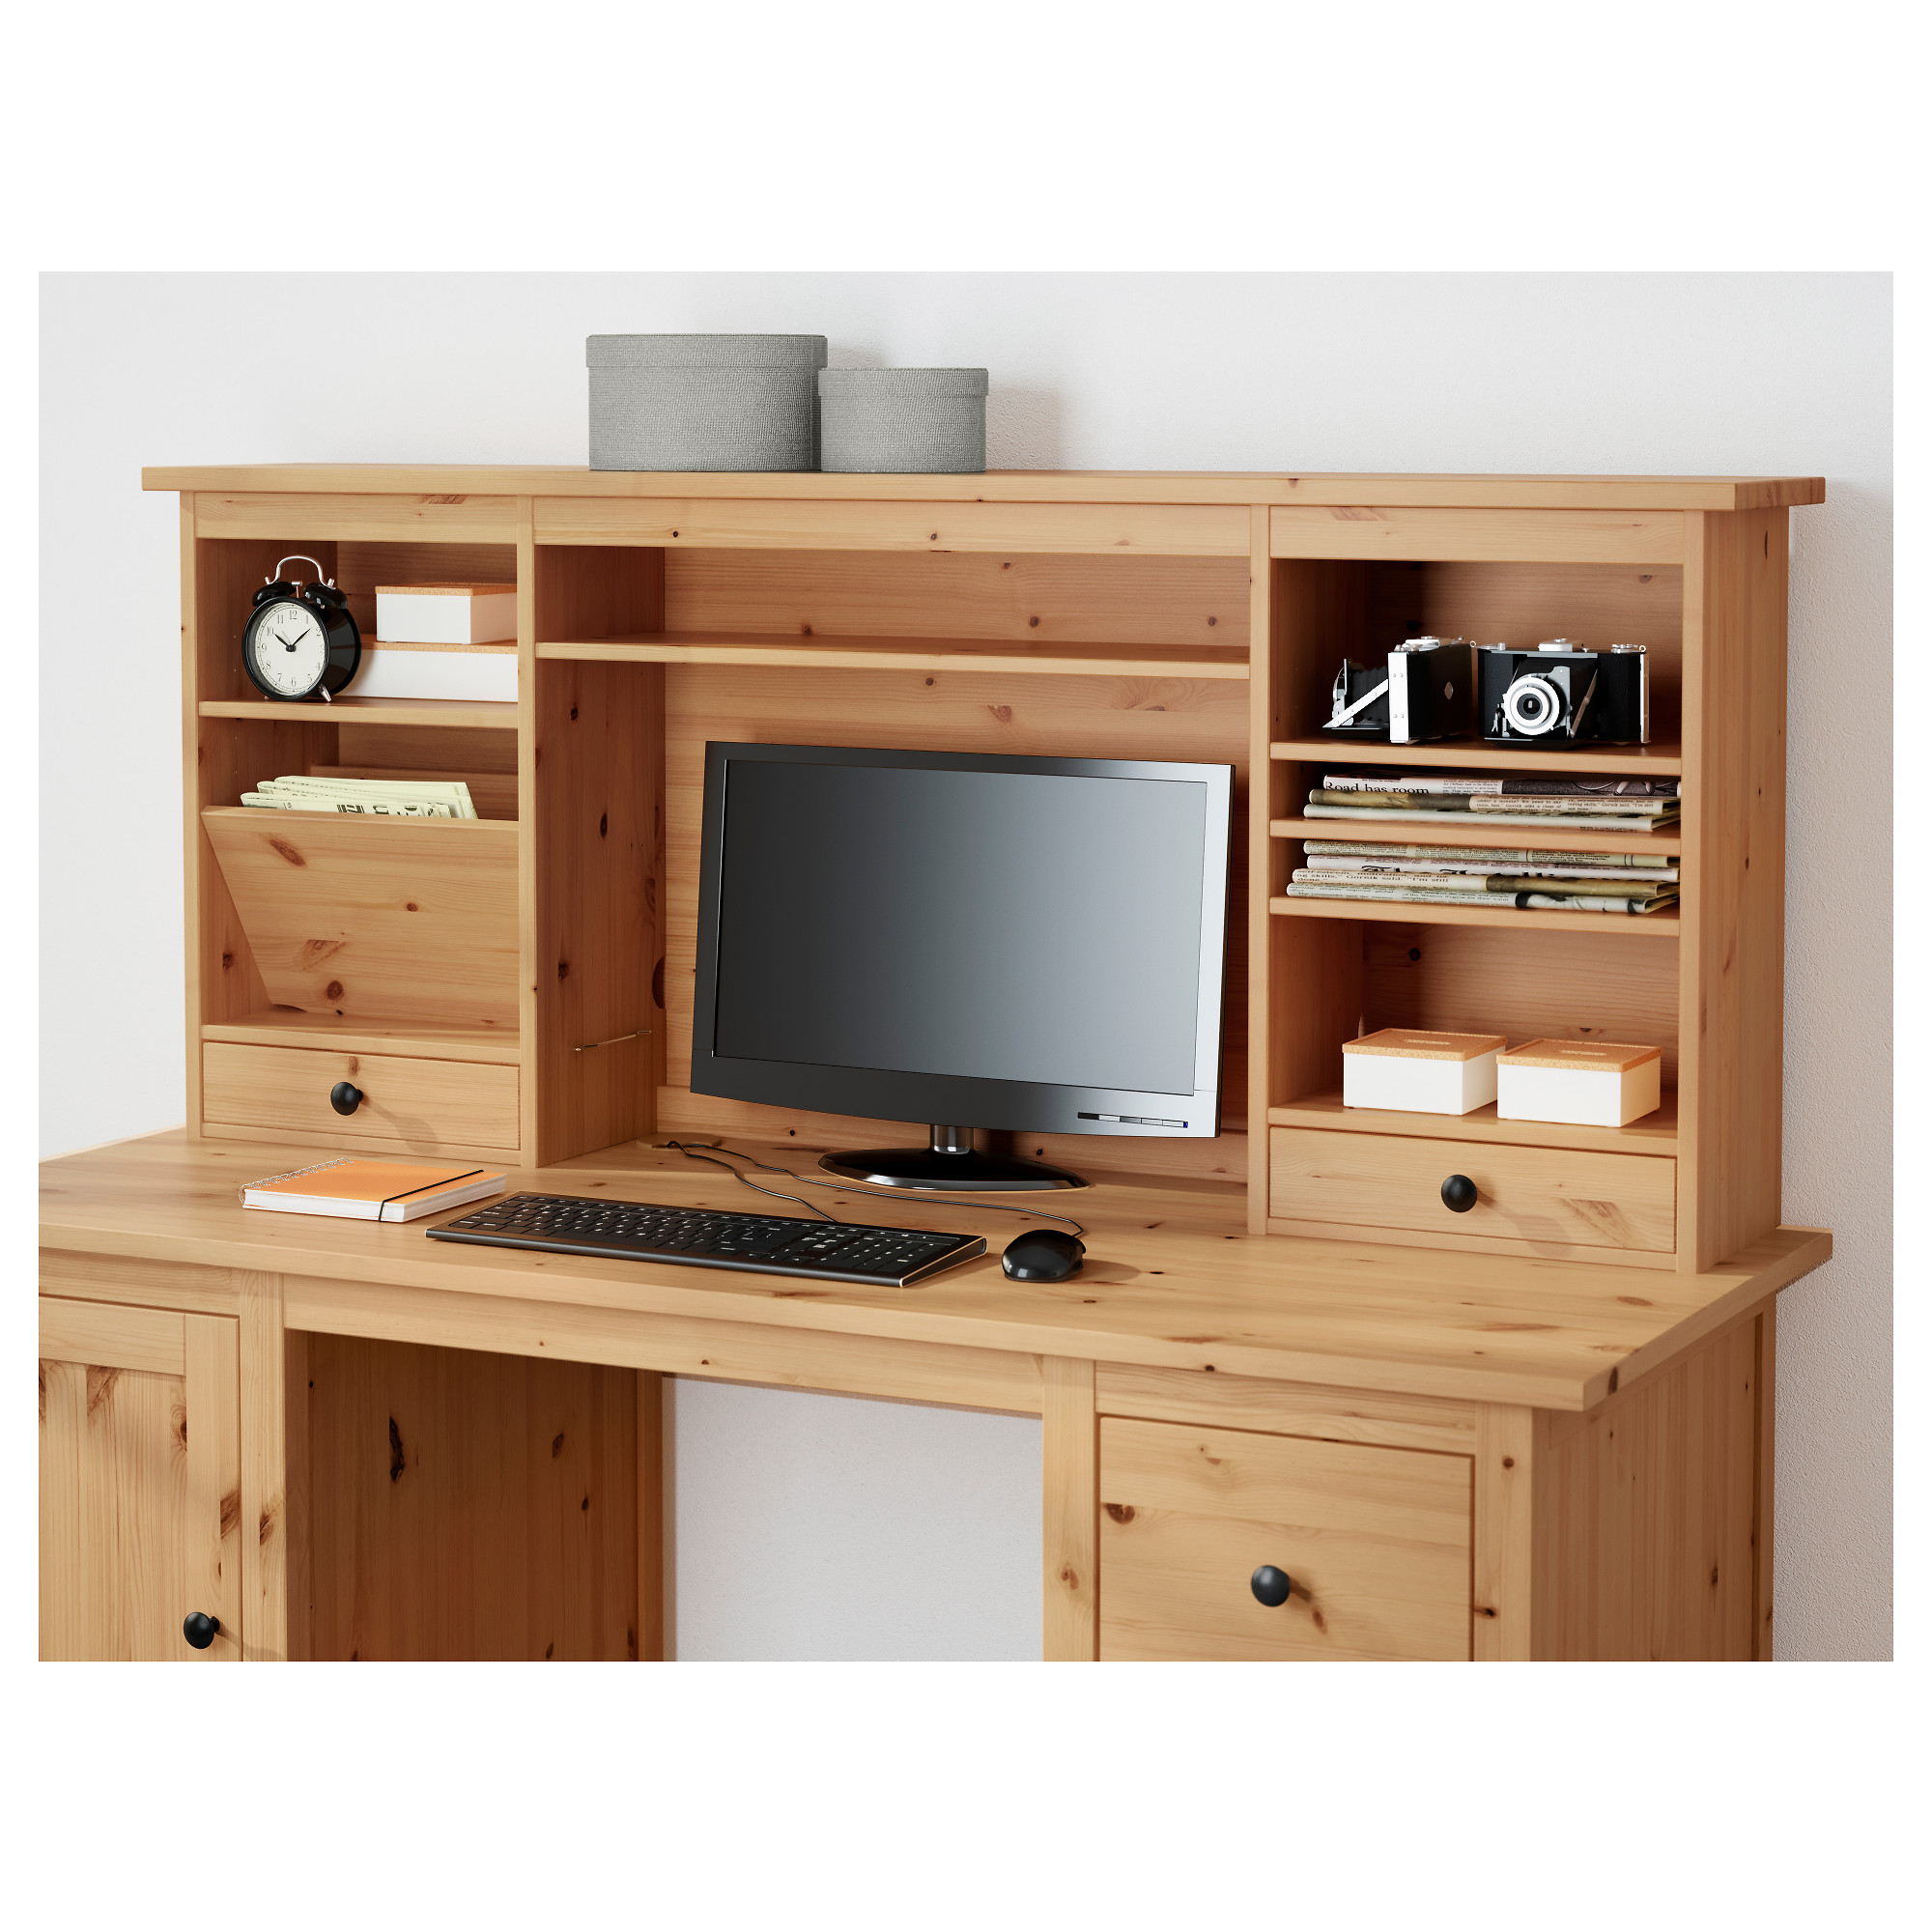 elegant show of shaped l ikea fice the best ideas desk hutch incredible ignite with